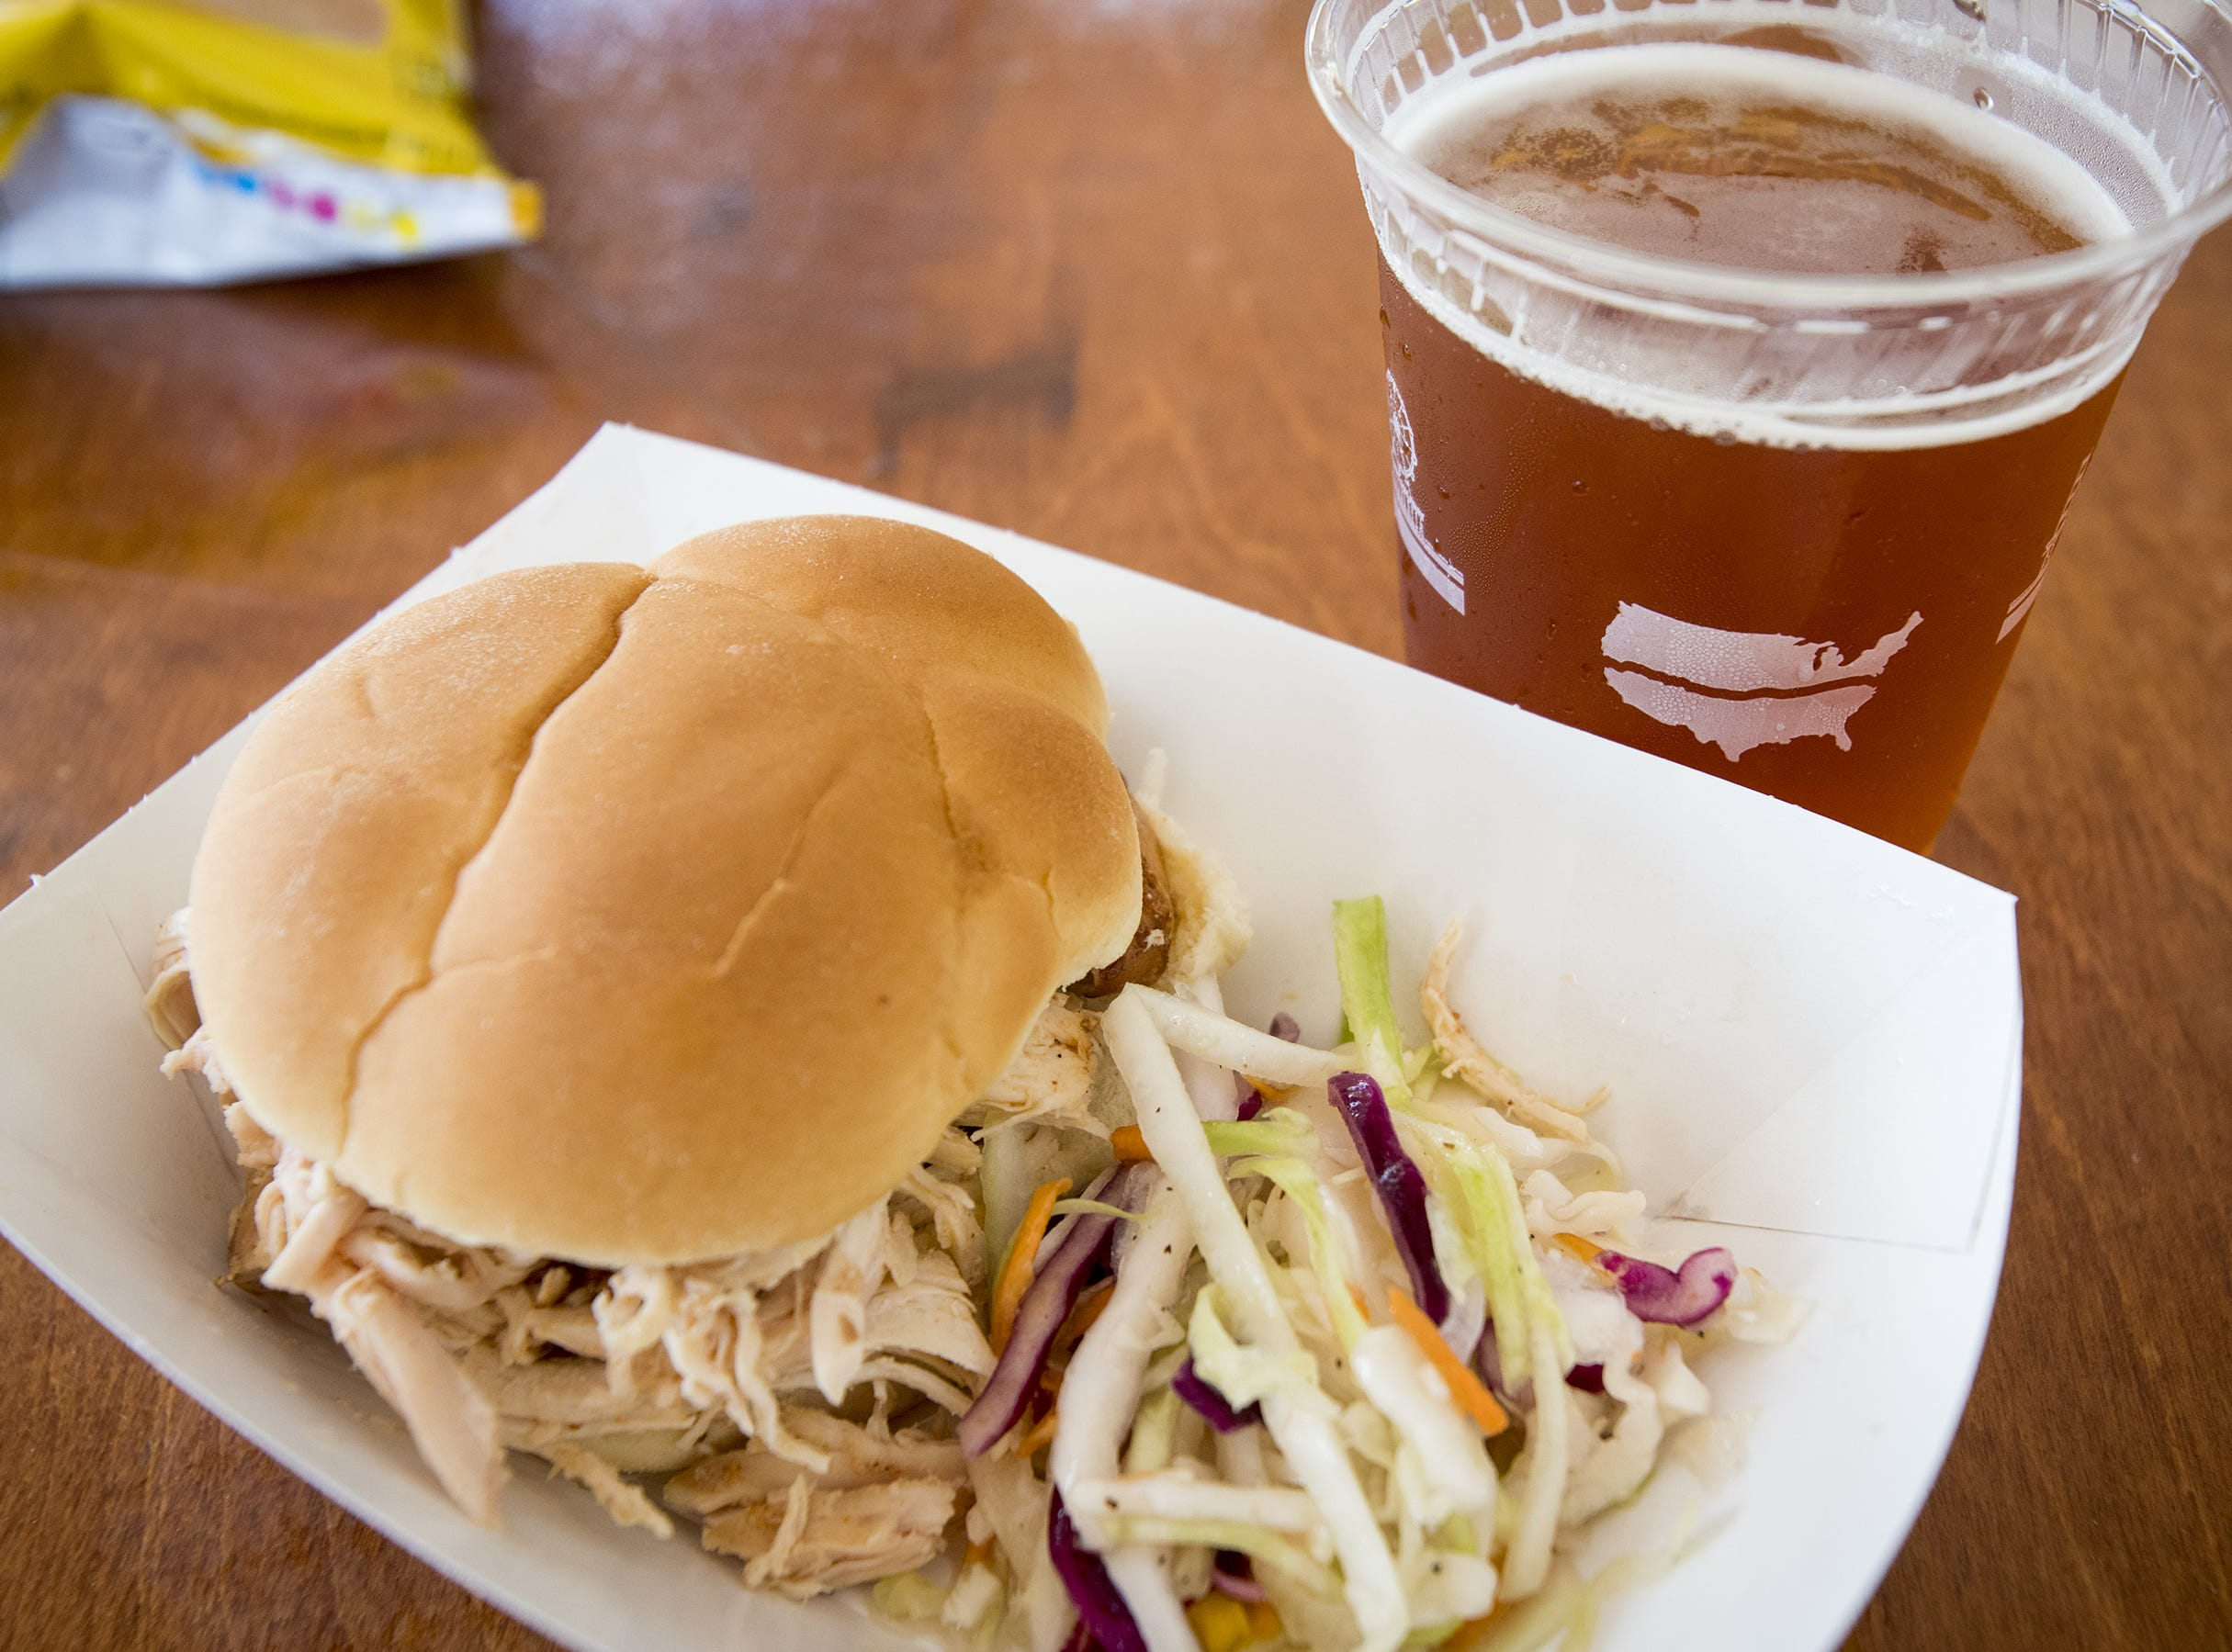 Food truck Surfside BBQ serves up pulled pork during Fifty Fest at 50 West Brewing Saturday, September 15, 2018 in Cincinnati, Ohio. The festival features beers from tons of local breweries.